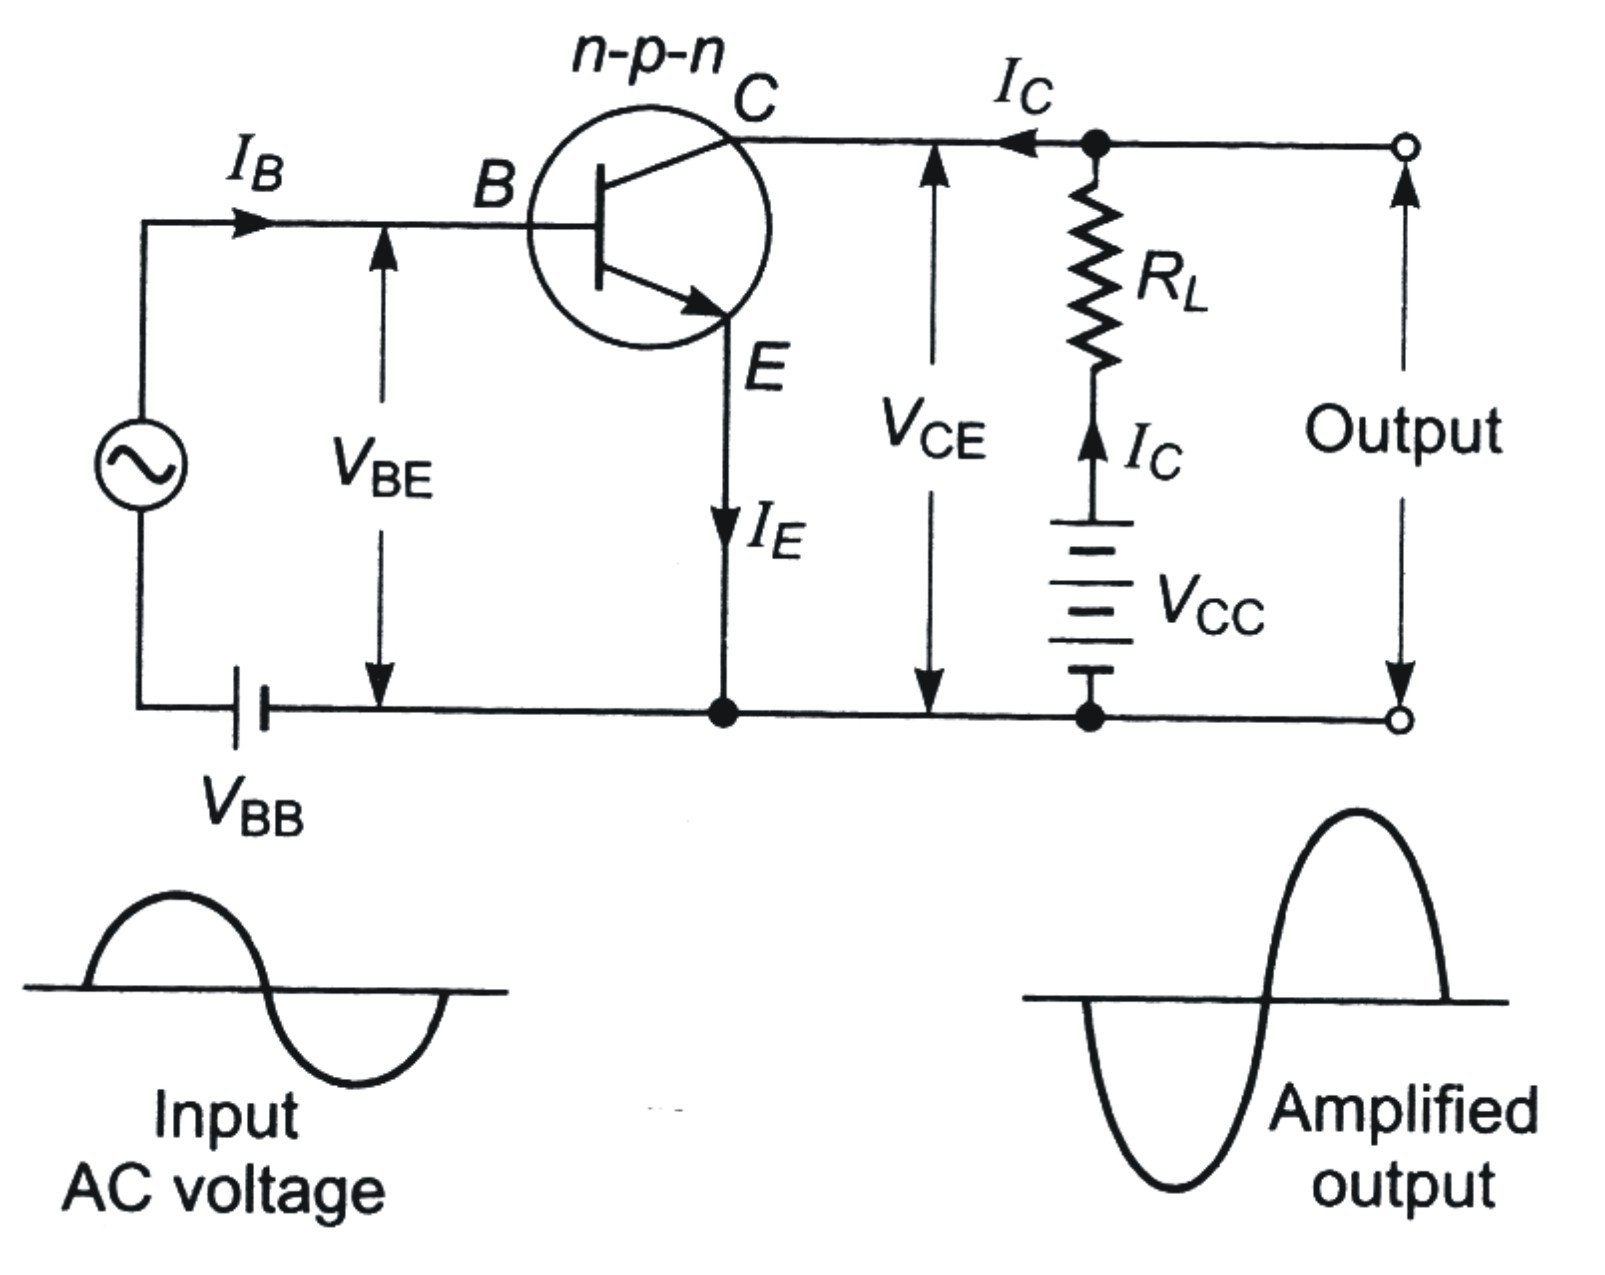 class a amplifier is a classa transistor amplifier